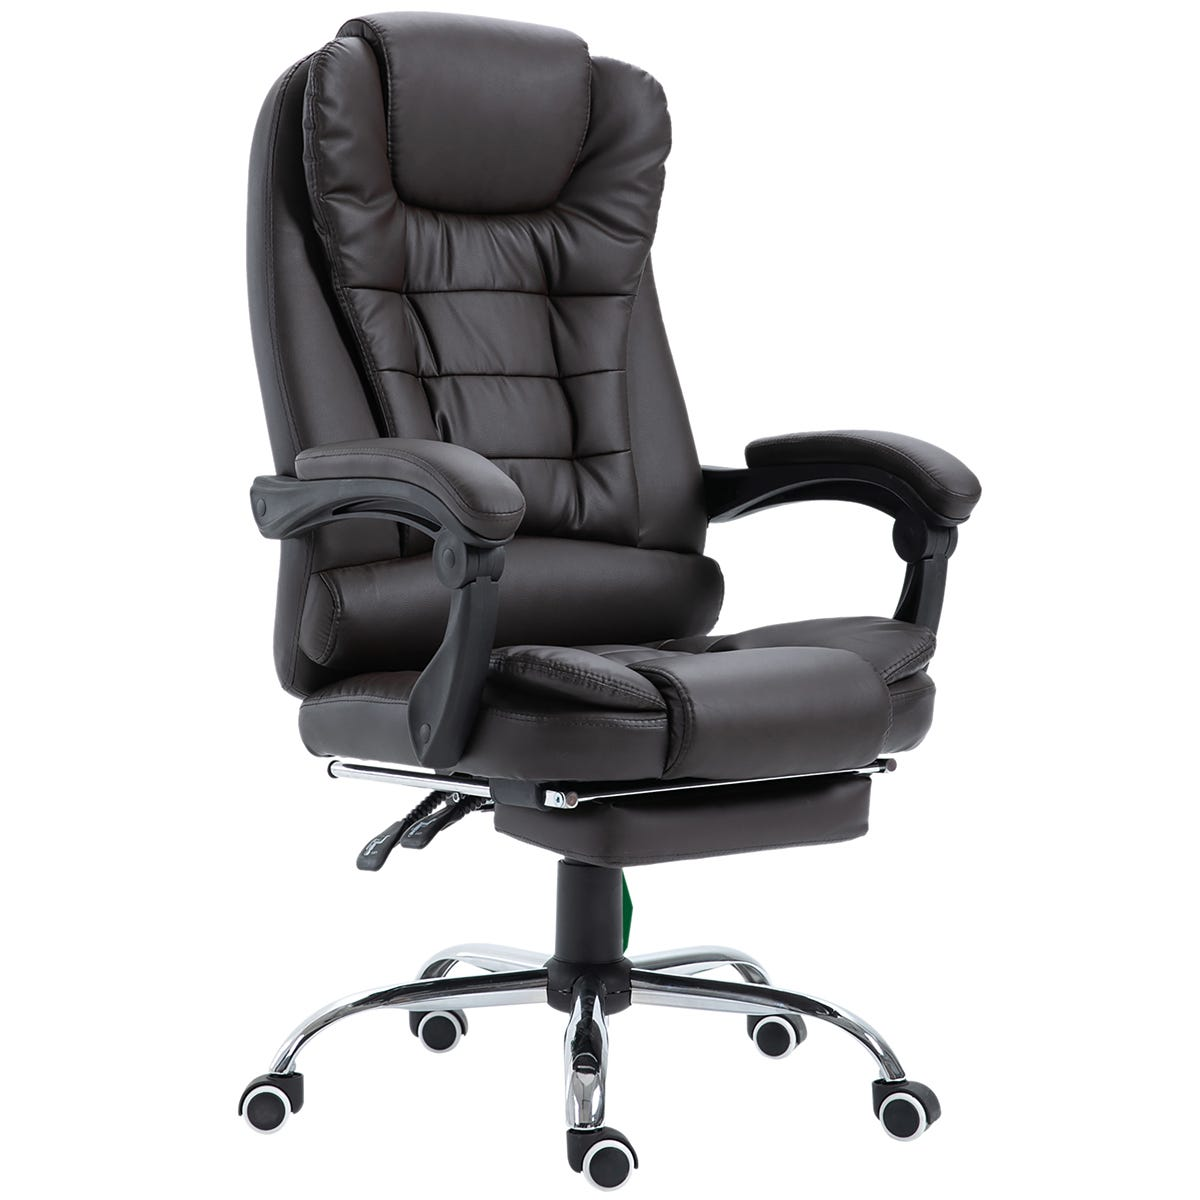 Zennor Nikko PU Leather Office Chair with Footrest - Brown